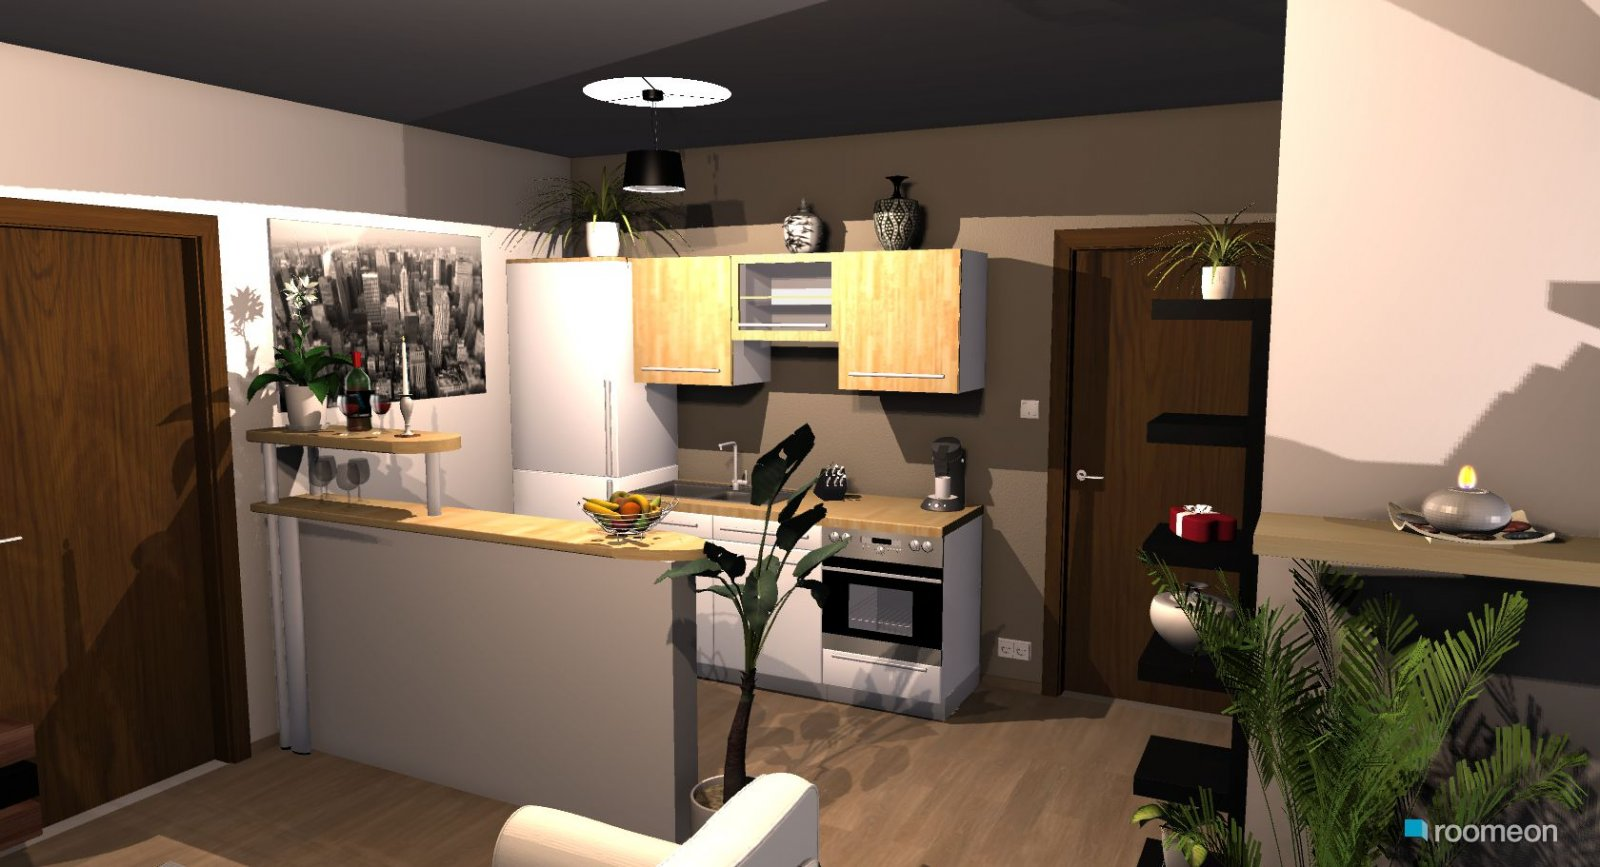 Room Design Kleine Wohnkuche Roomeon Community